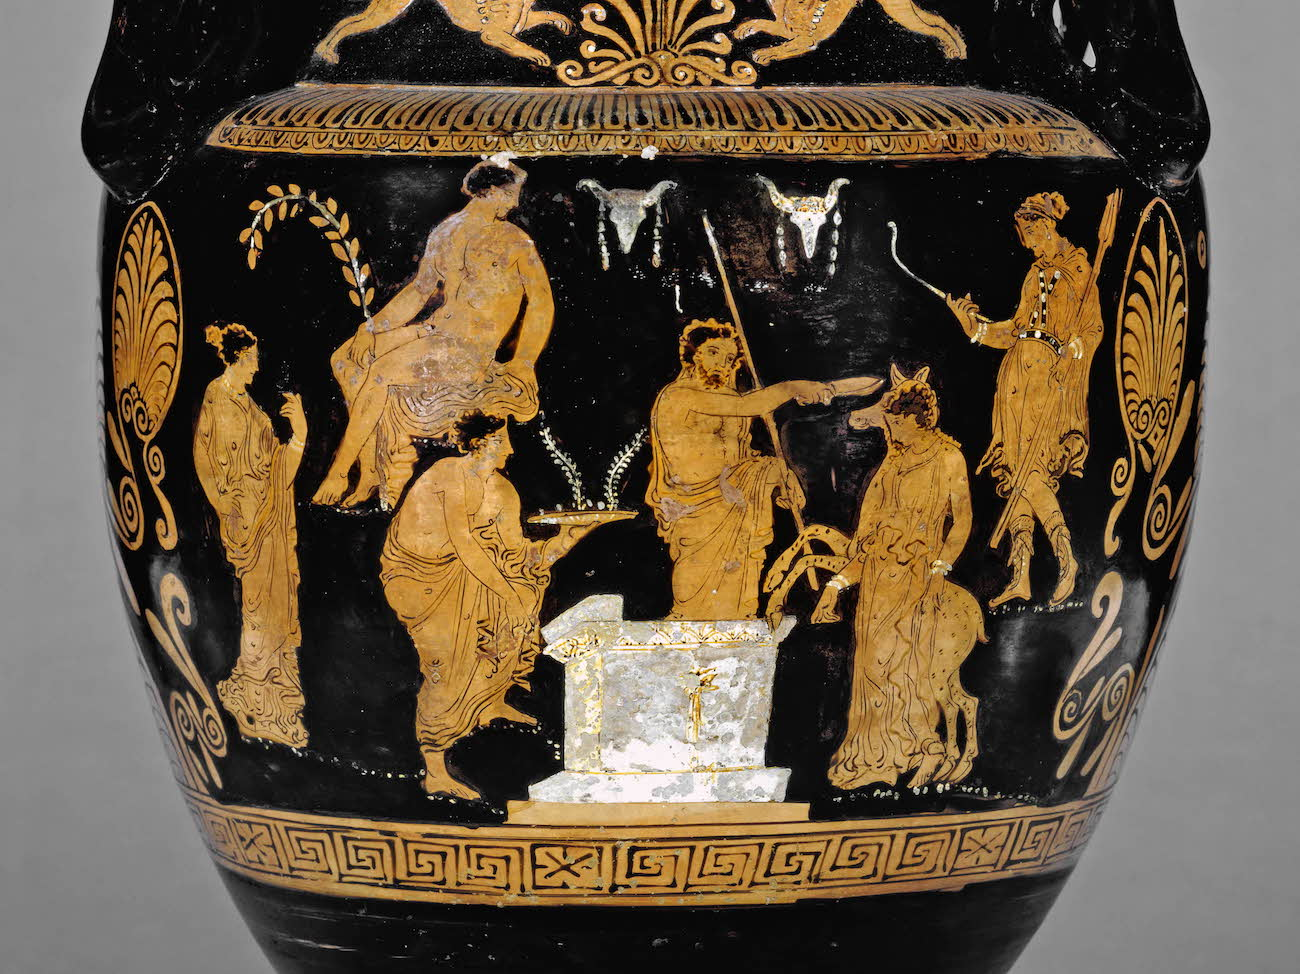 Detail of an ancient Greek red-figure vase showing a young woman being led to sacrifice